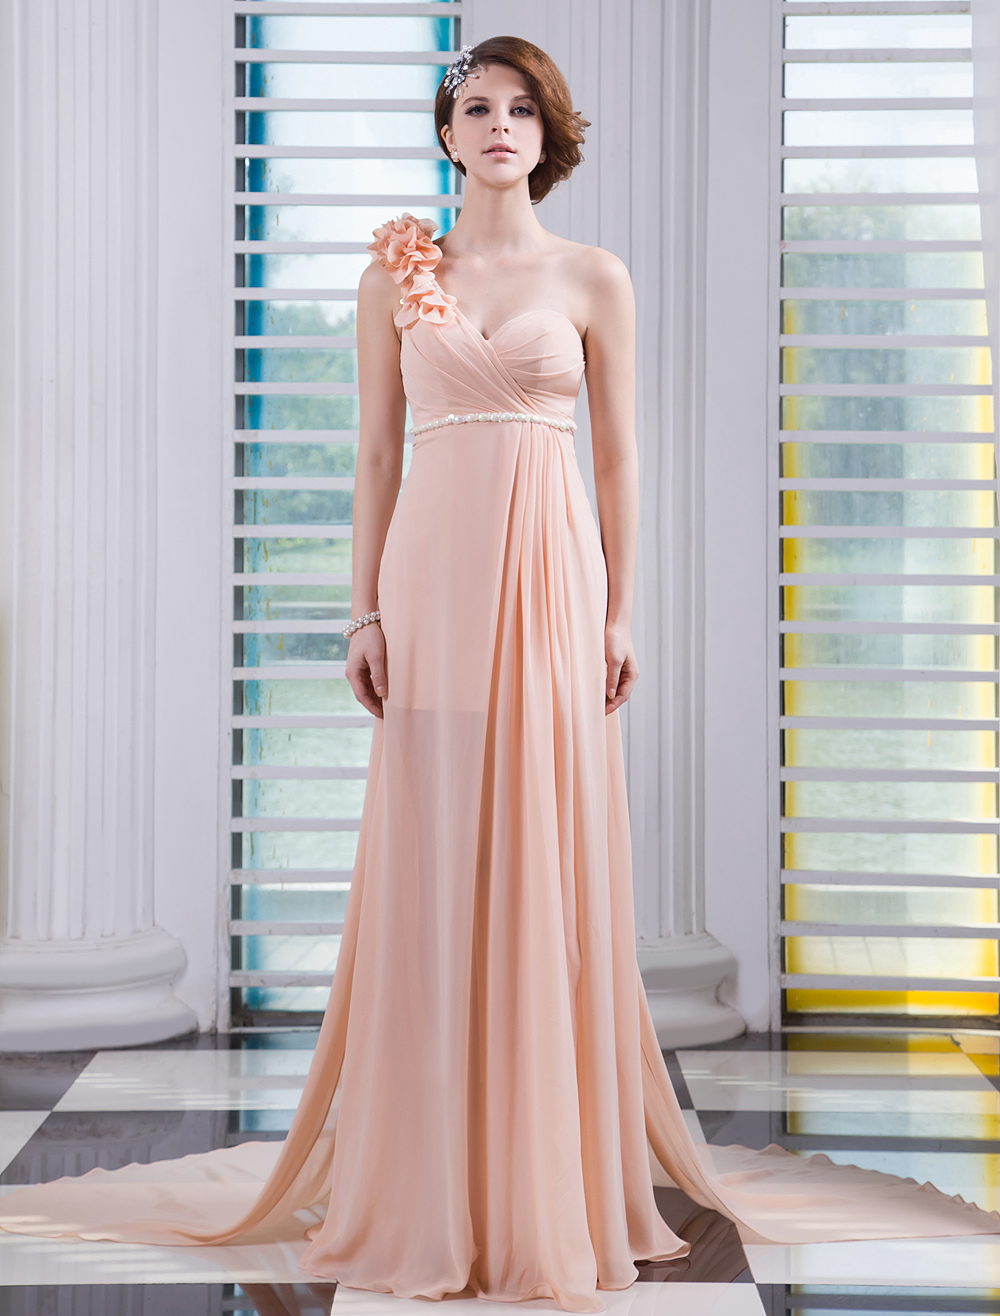 f28ff514d7 ... Shoulder Prom Dress Sweetheart Sleeveless Flower Beaded Pleated Party  Dress With. 123. 45%OFF. Color Nude